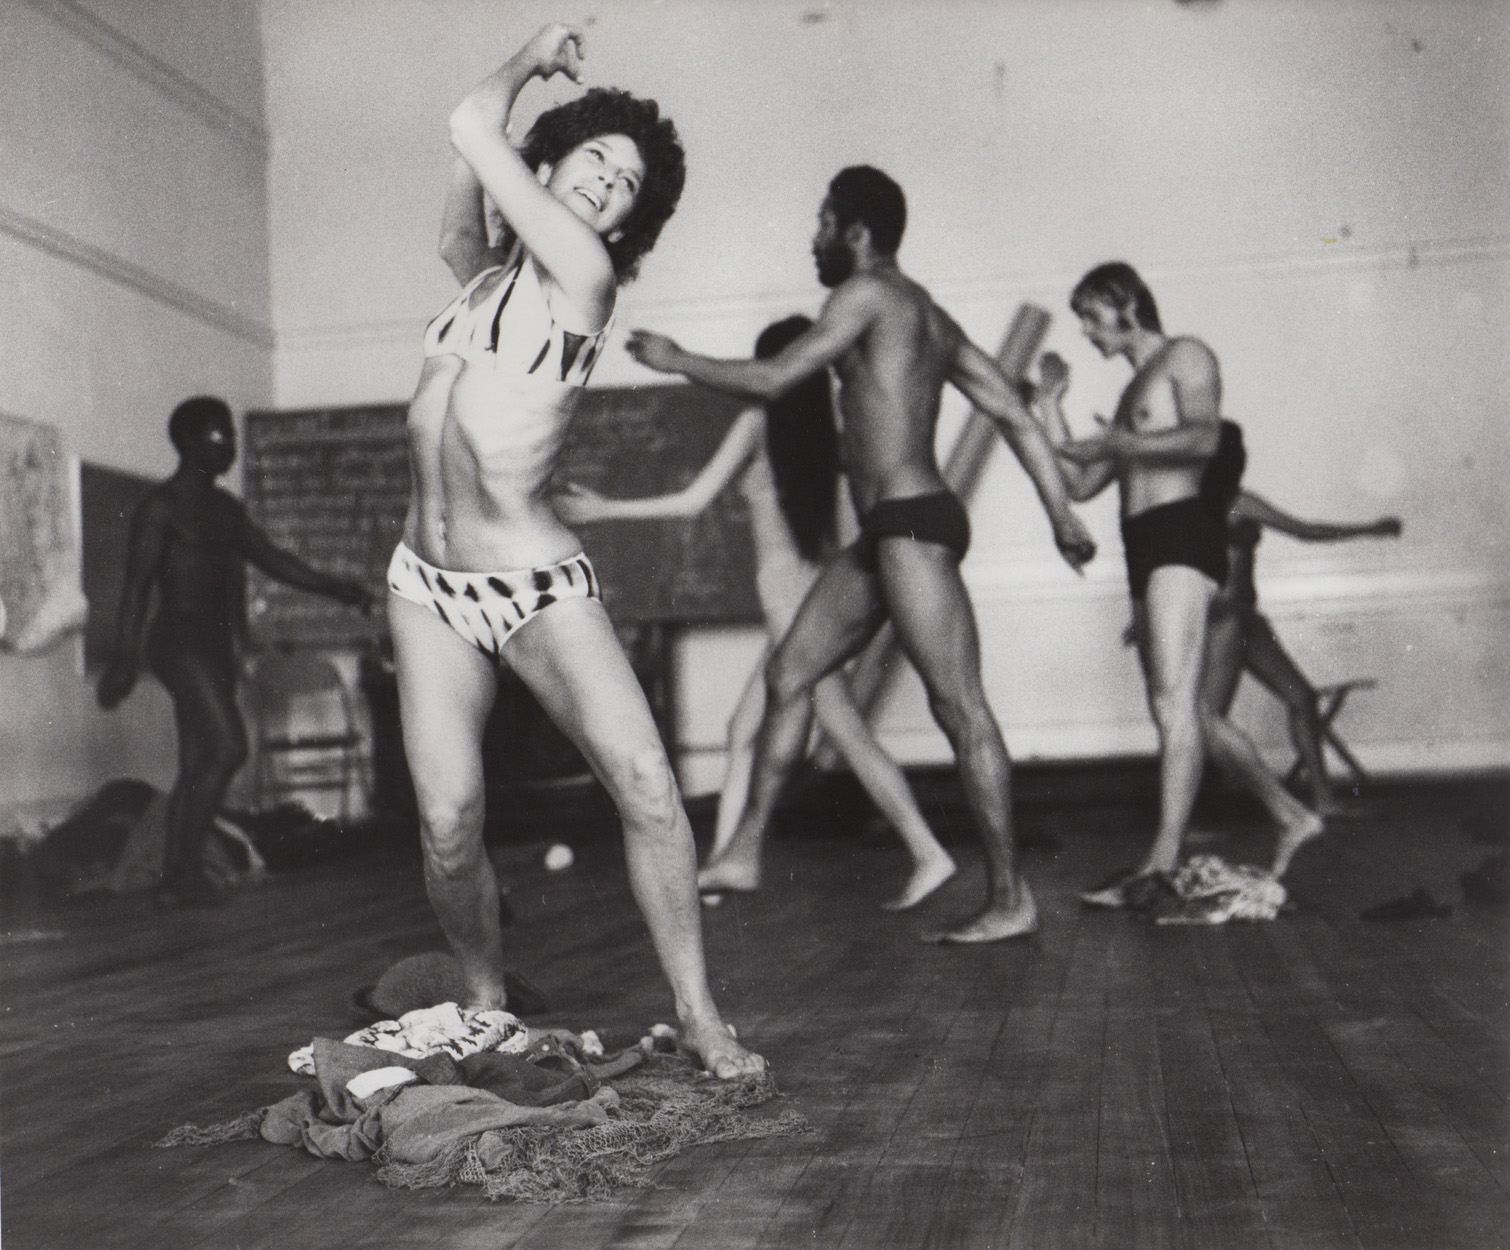 Anna Halprin with dancers from the San Francisco Dancers' Workshop and Studio Watts School for the Arts, during a rehearsal for <em>Ceremony of Us</em>, 1969. Photo courtesy of Anna Halprin.